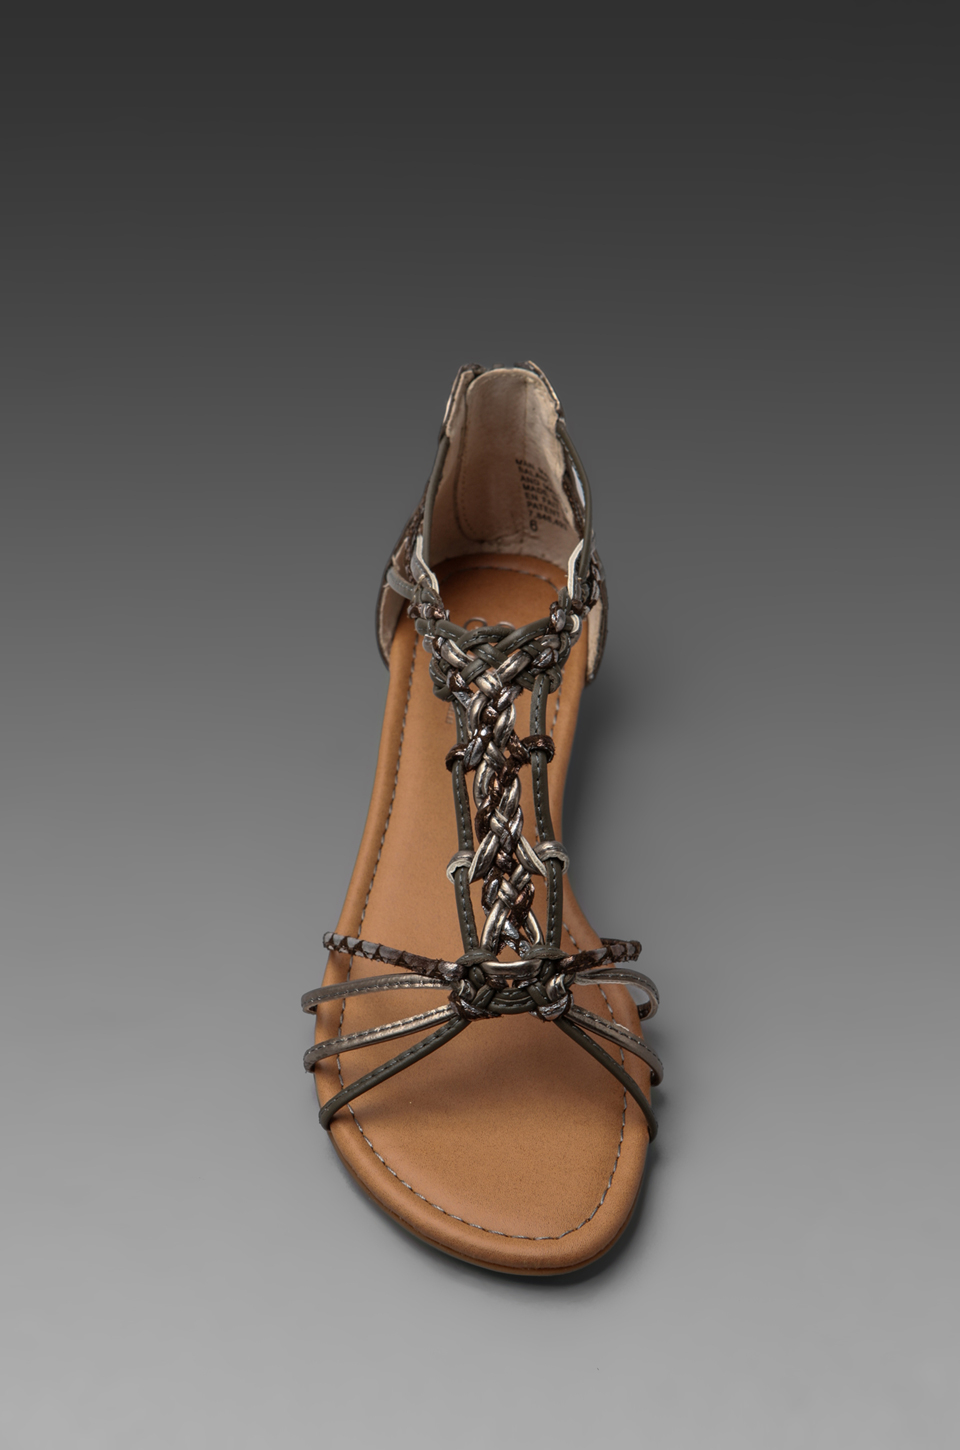 Seychelles Treat Yourself Sandal In Pewter In Pewter